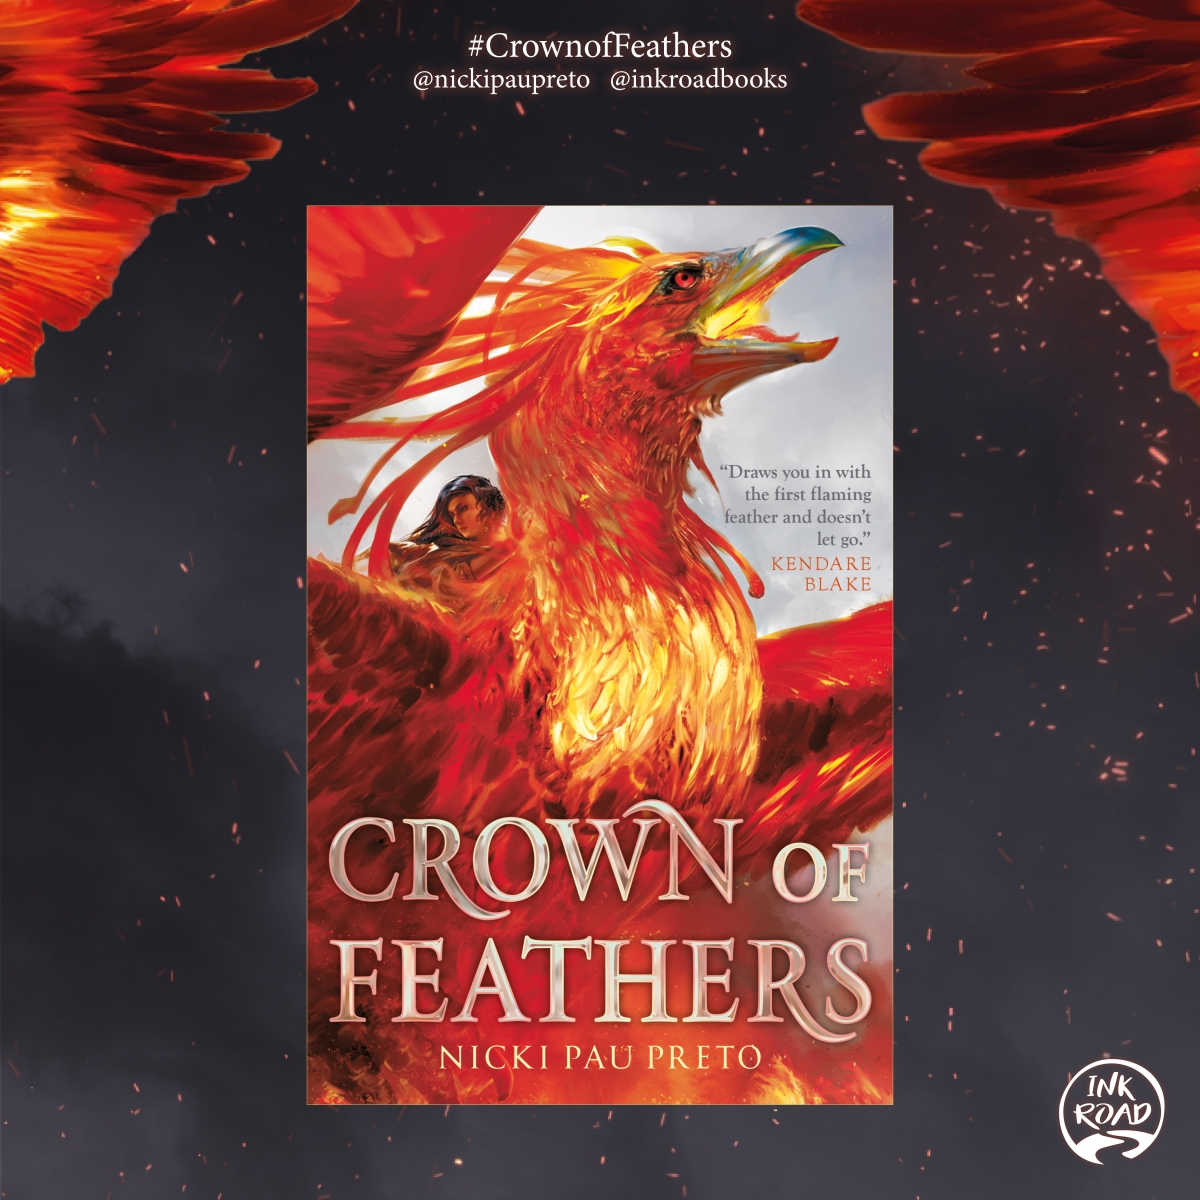 Crown of Feathers Blog Tour // Nicki Pau Preto talks about writing action scenes, dialogue, and folk lore (Q&A)